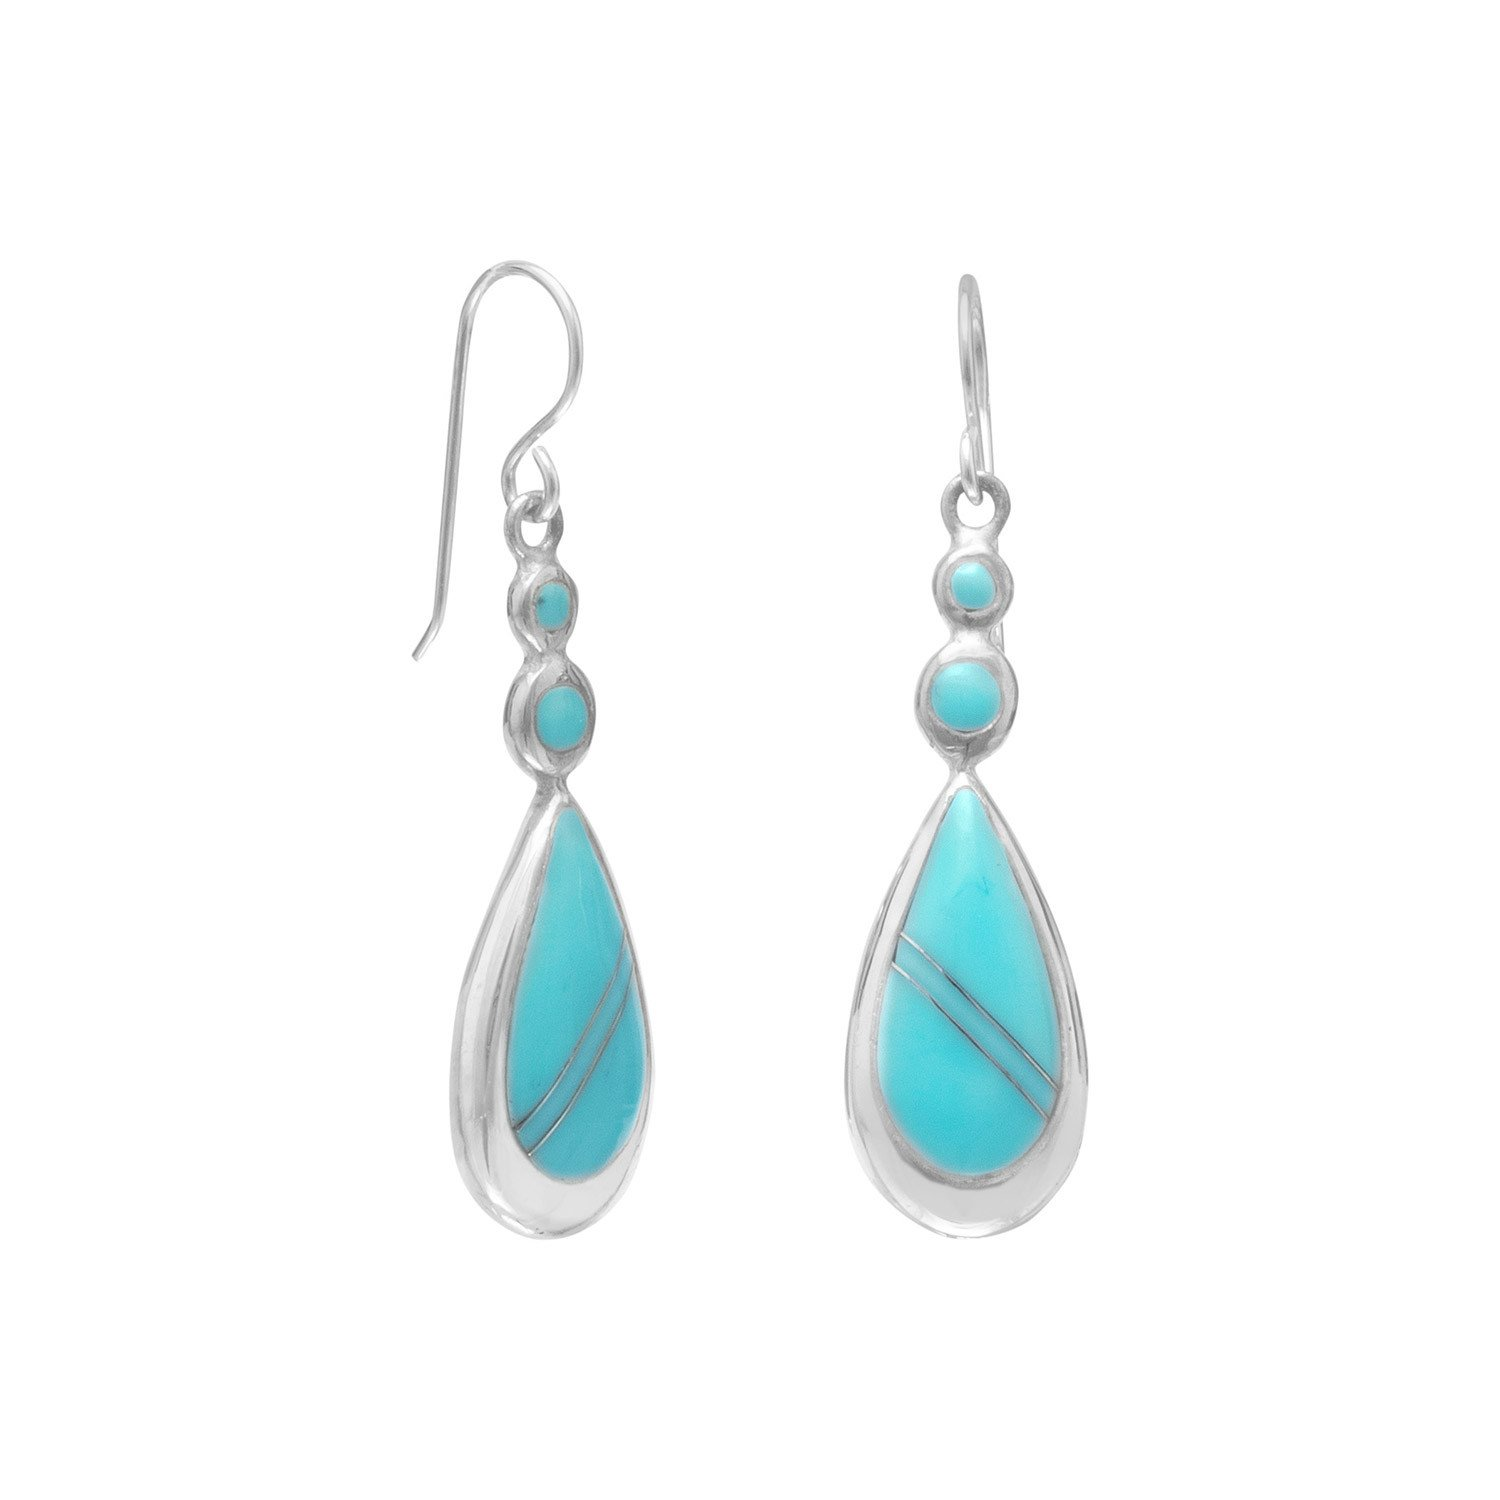 Round and Pear Shape Stabilized Turquoise Drop Earrings